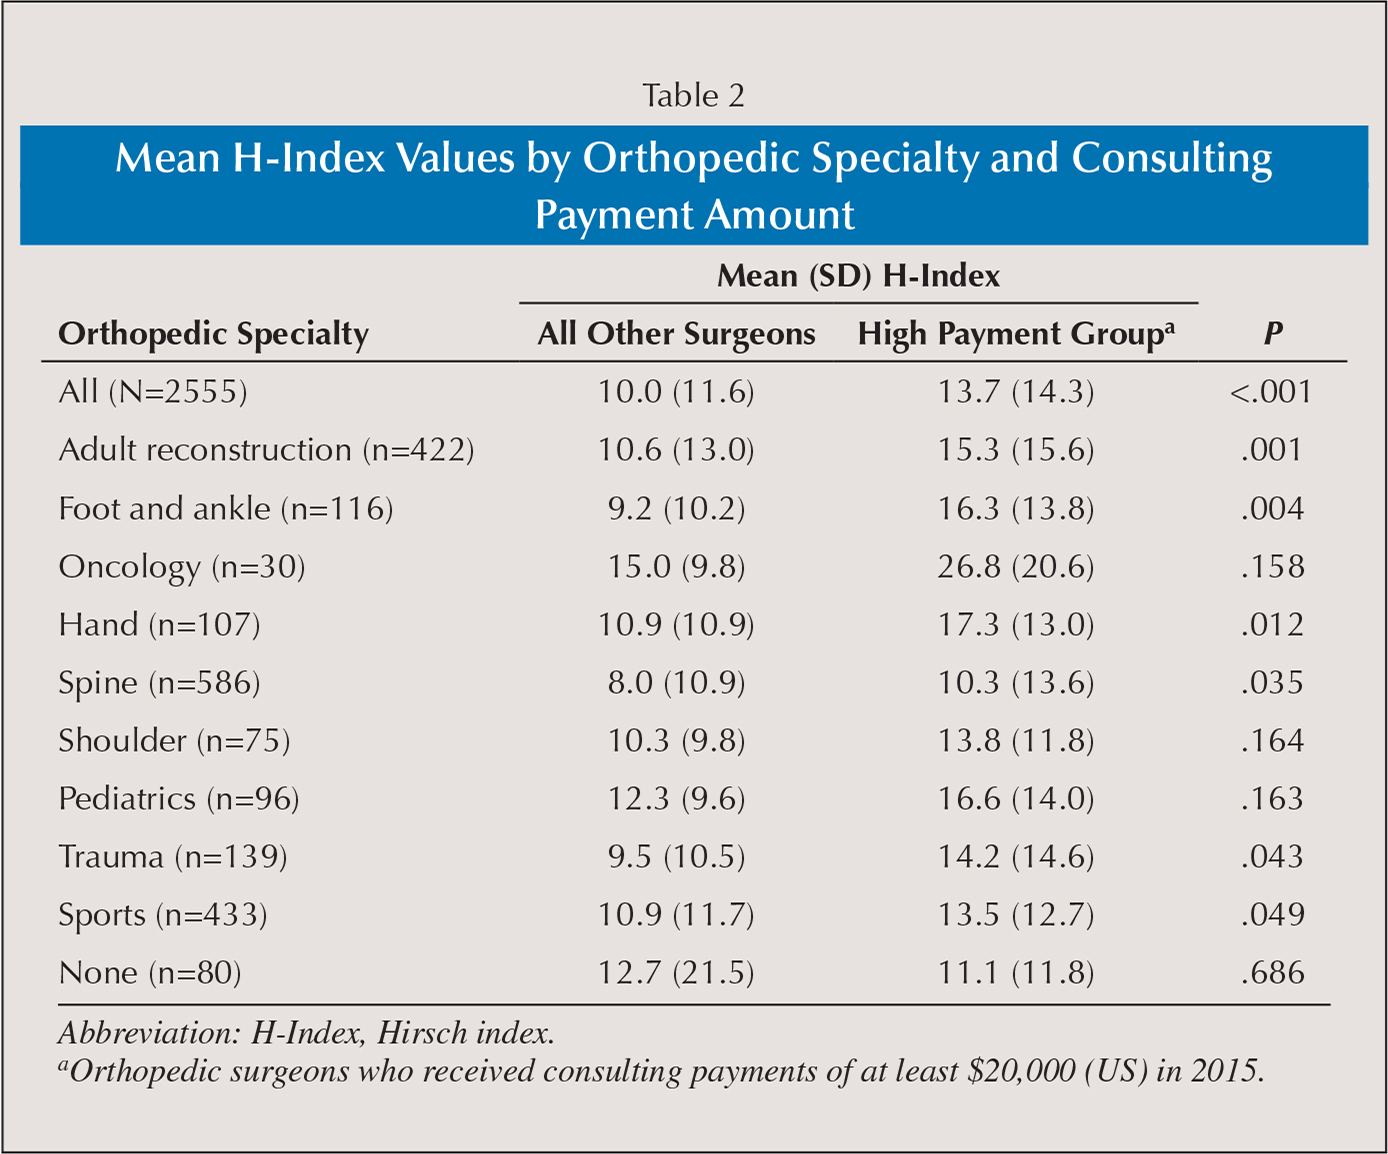 Mean H-Index Values by Orthopedic Specialty and Consulting Payment Amount